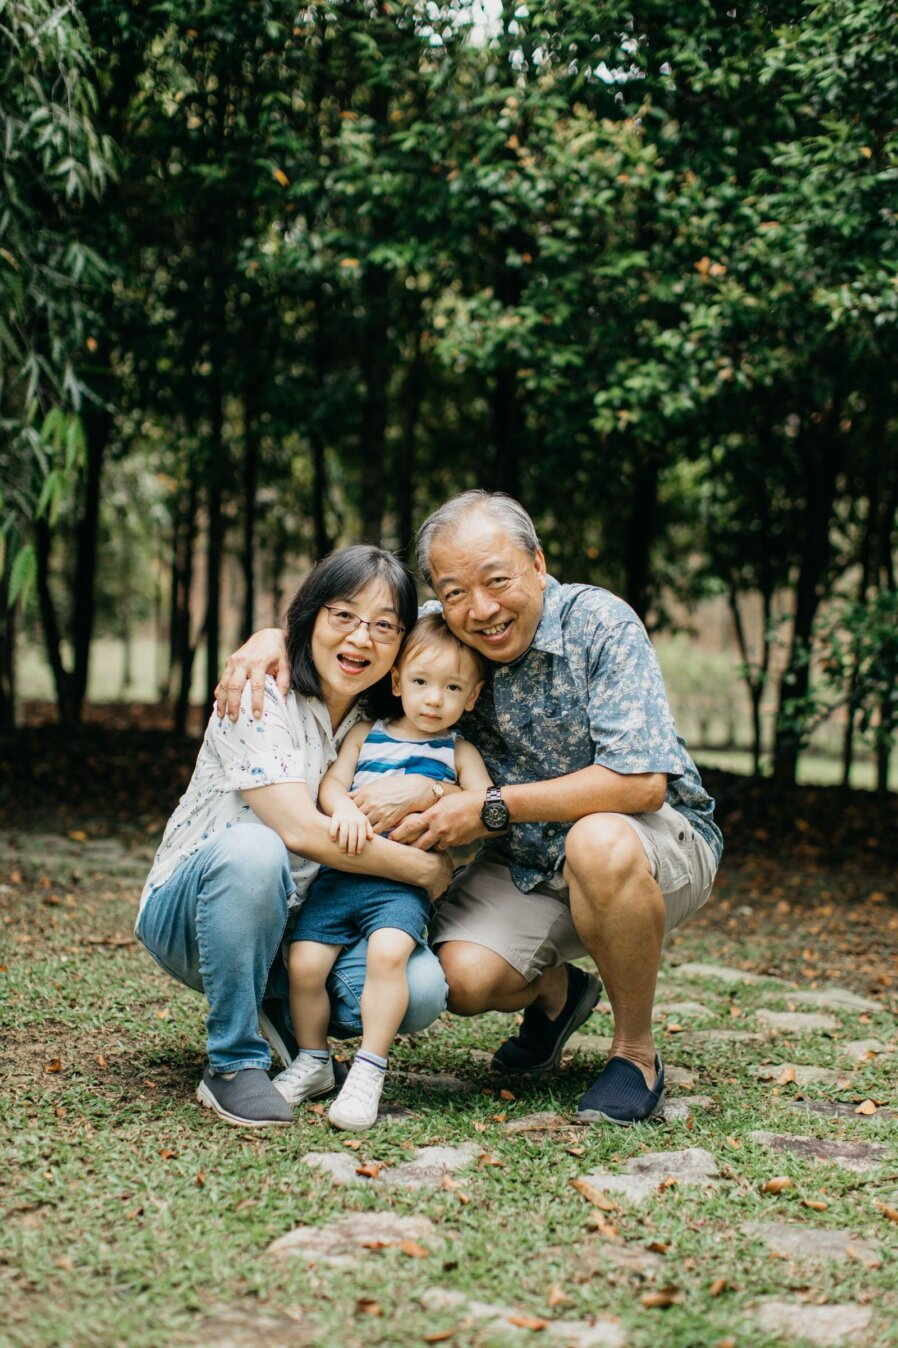 Cute little boy with grandpa and grandma Damansar Tropical Family Portrait Session in Kuala Lumpur Malaysia